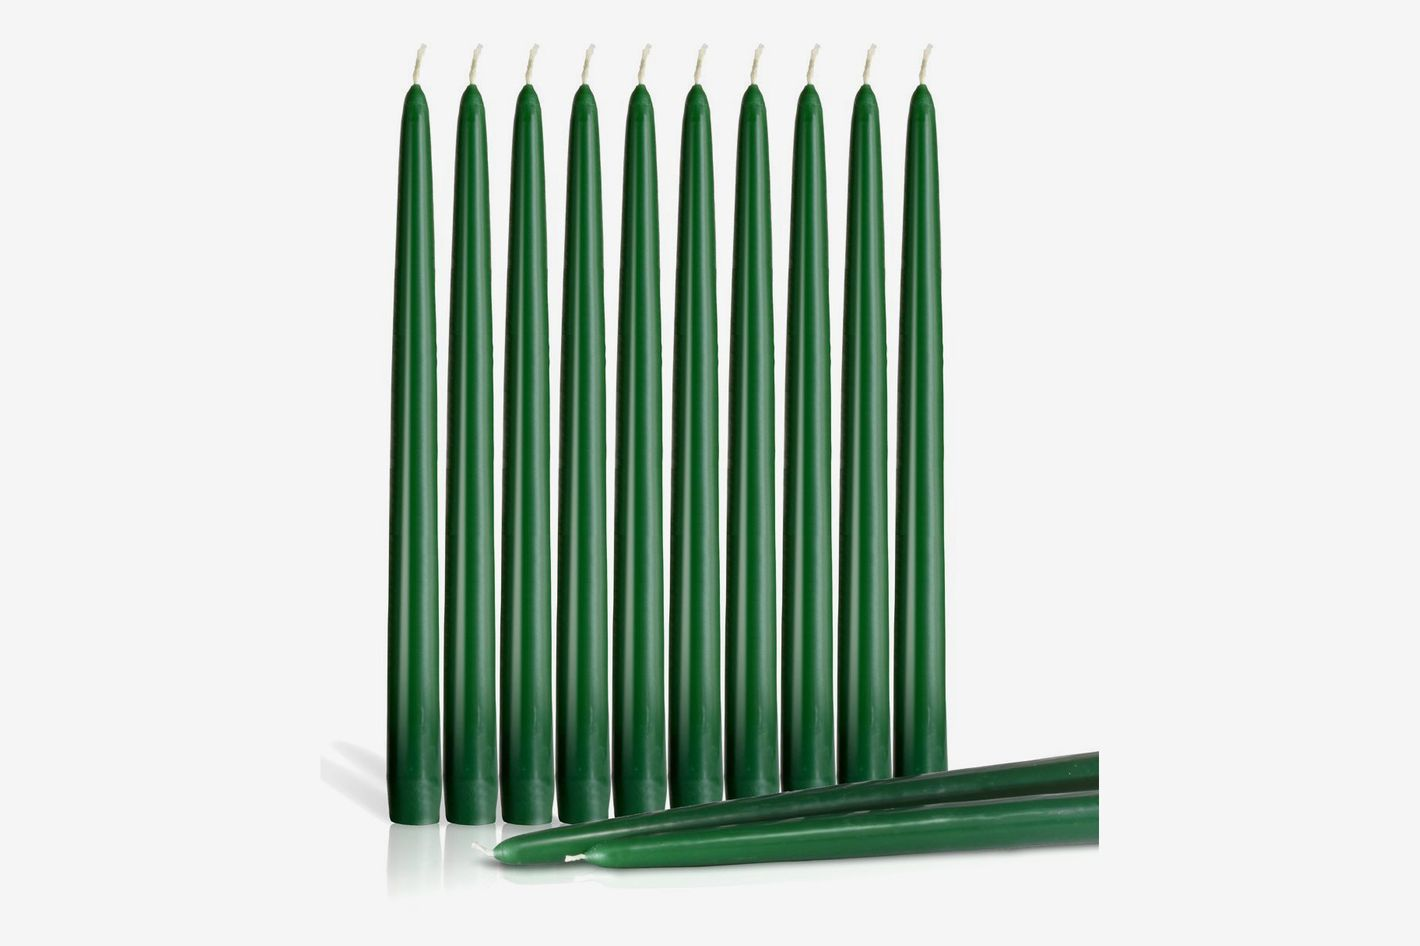 Dripless Taper Candles 12-Inch Tall